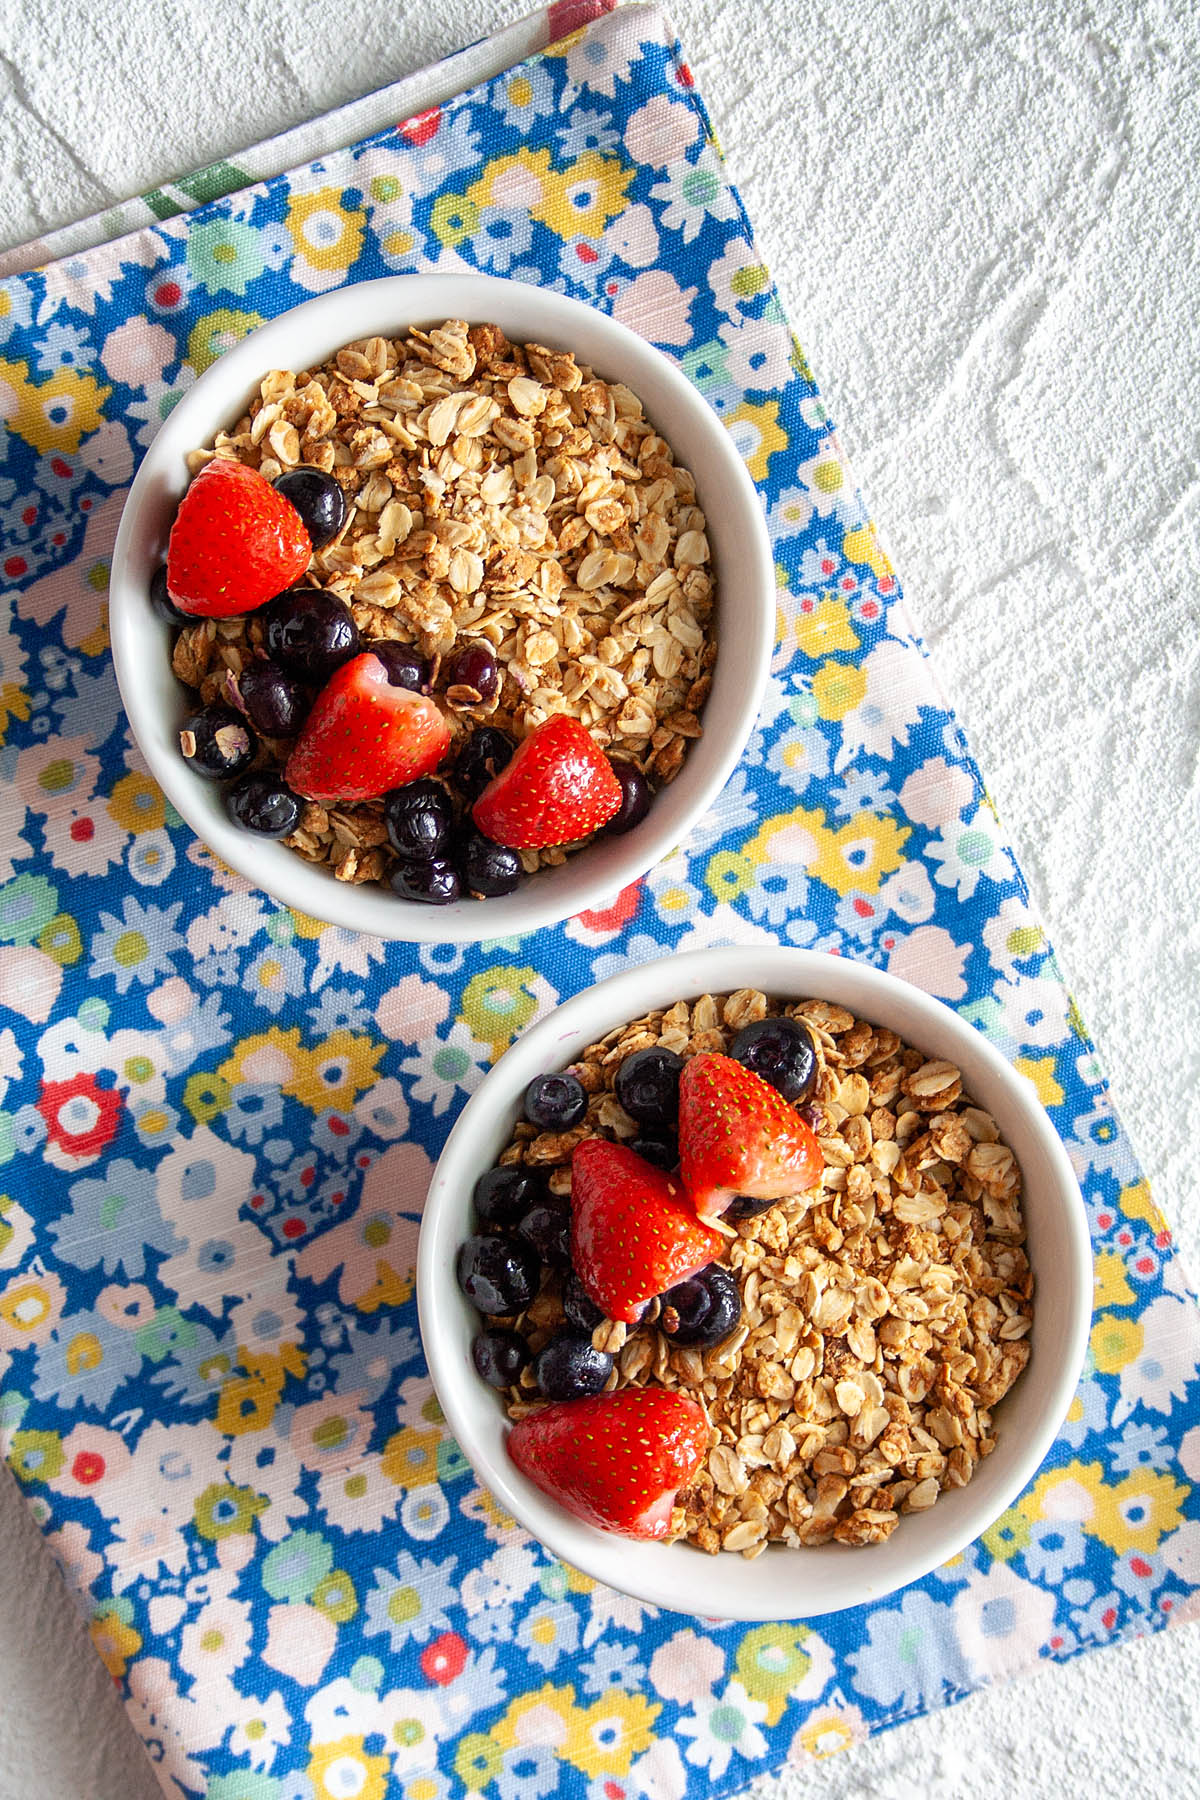 Peanut Butter Granola in two bowls bird's eye view.